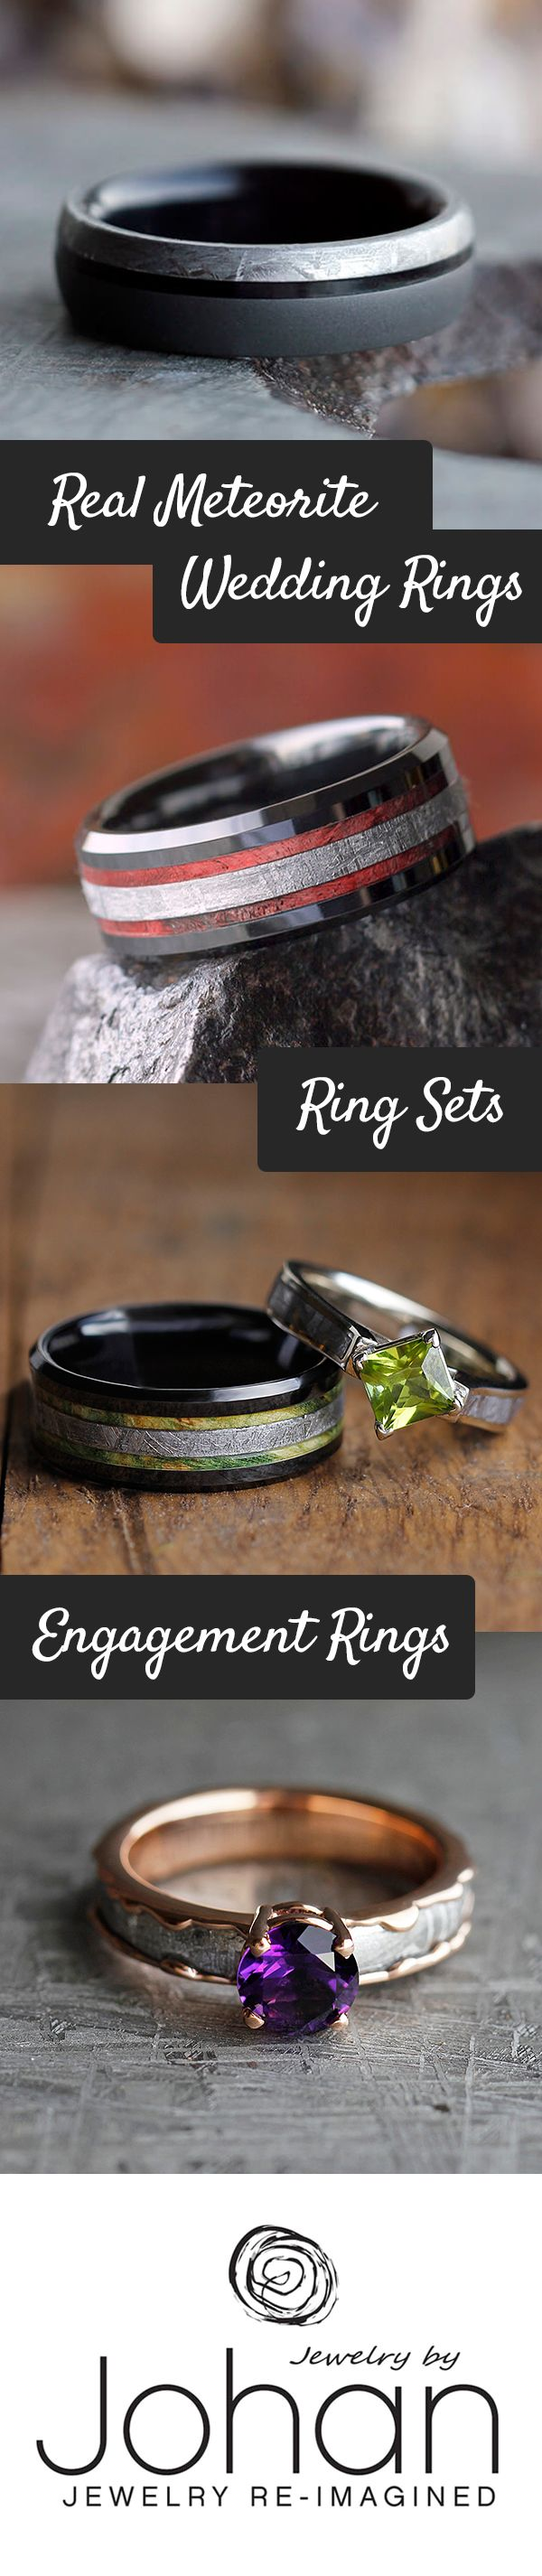 handmade wedding rings handmade wedding rings Handmade wedding rings created with genuine meteorite and combined with other unique materials like wood